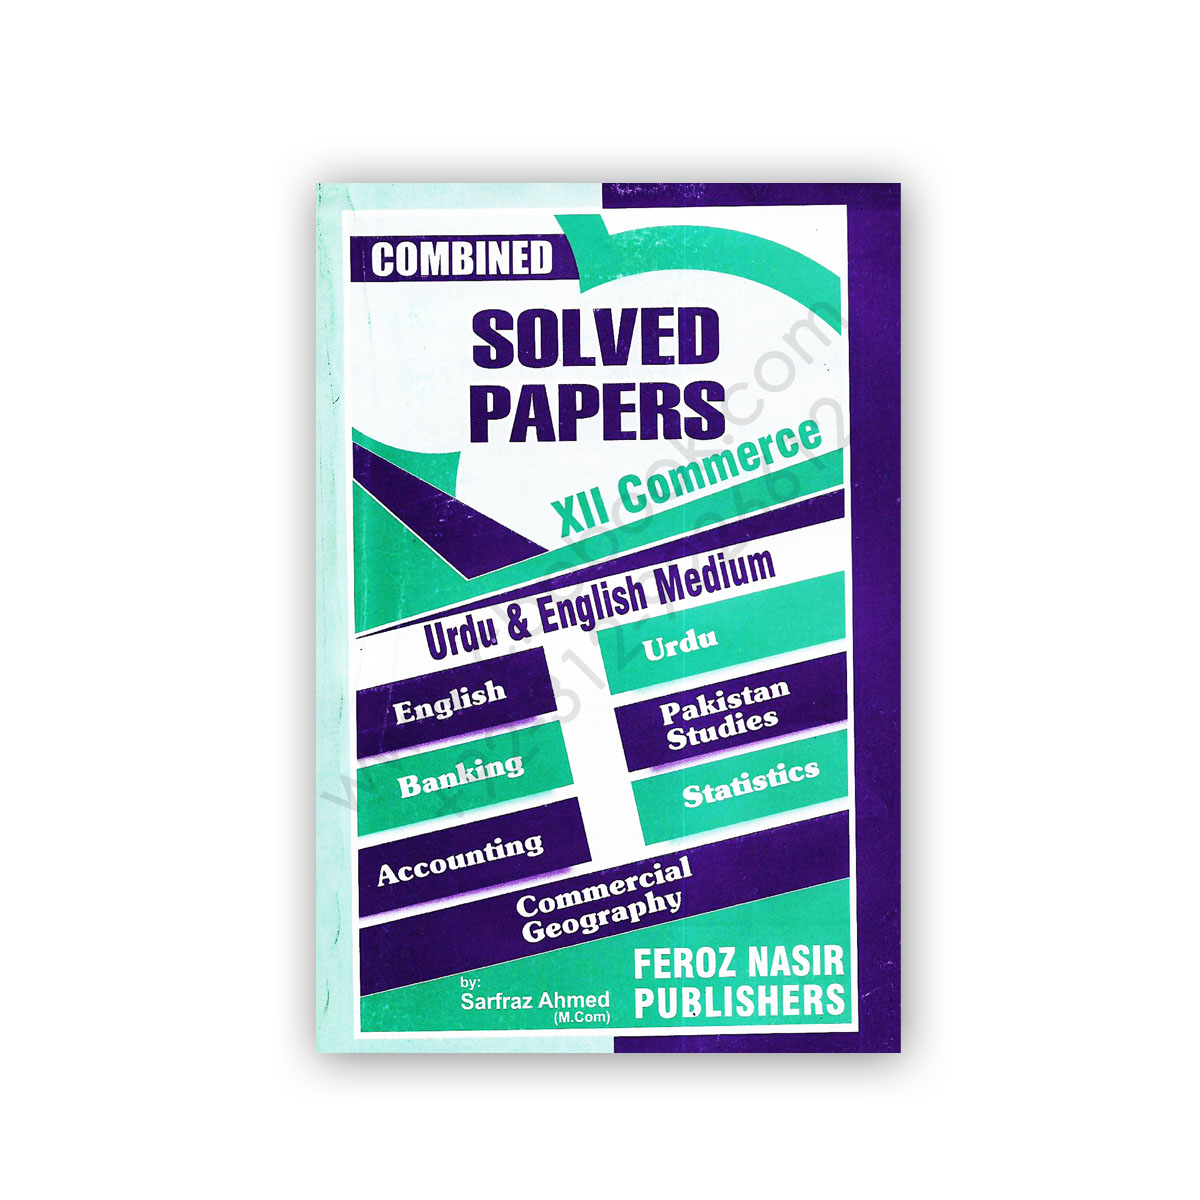 5 years solved papers for xii commerce combined - feroz nasir